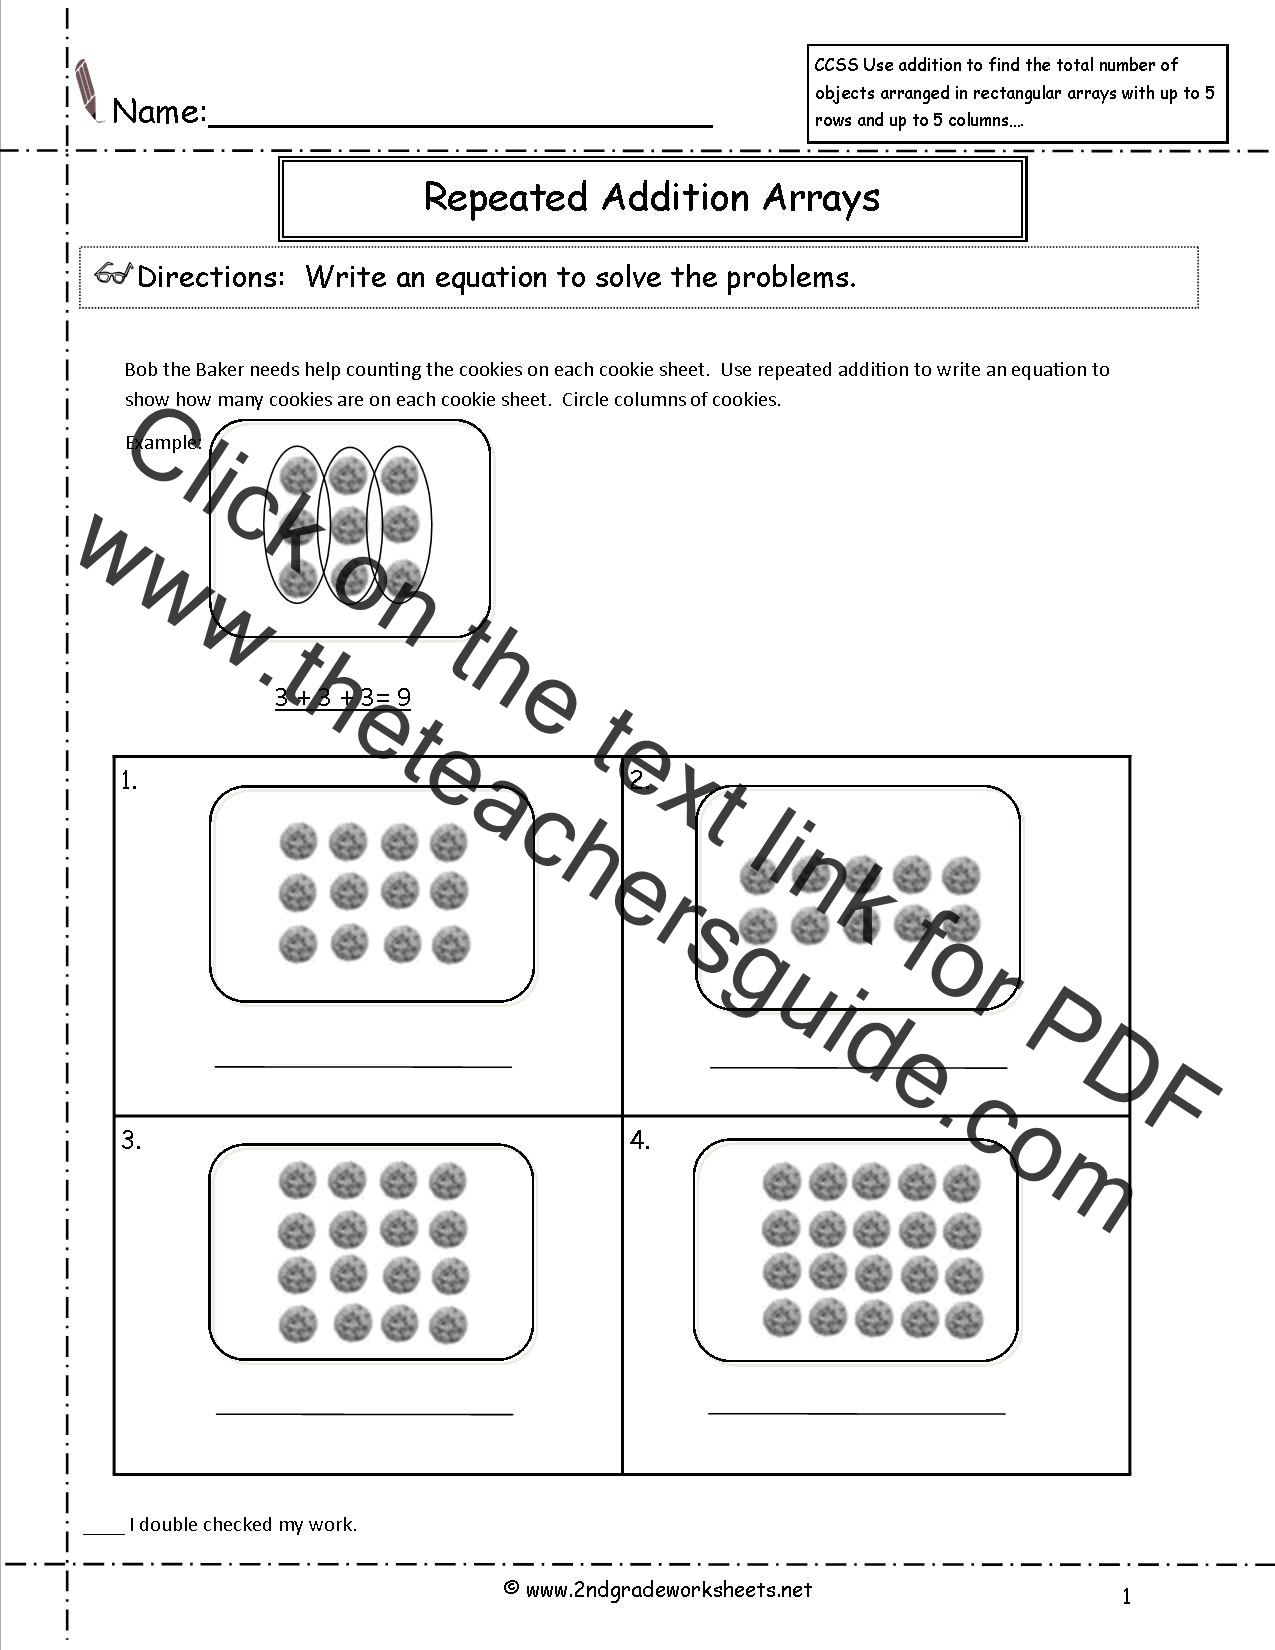 2nd grade math common core state standards worksheets ccss 2oa4 worksheets buycottarizona